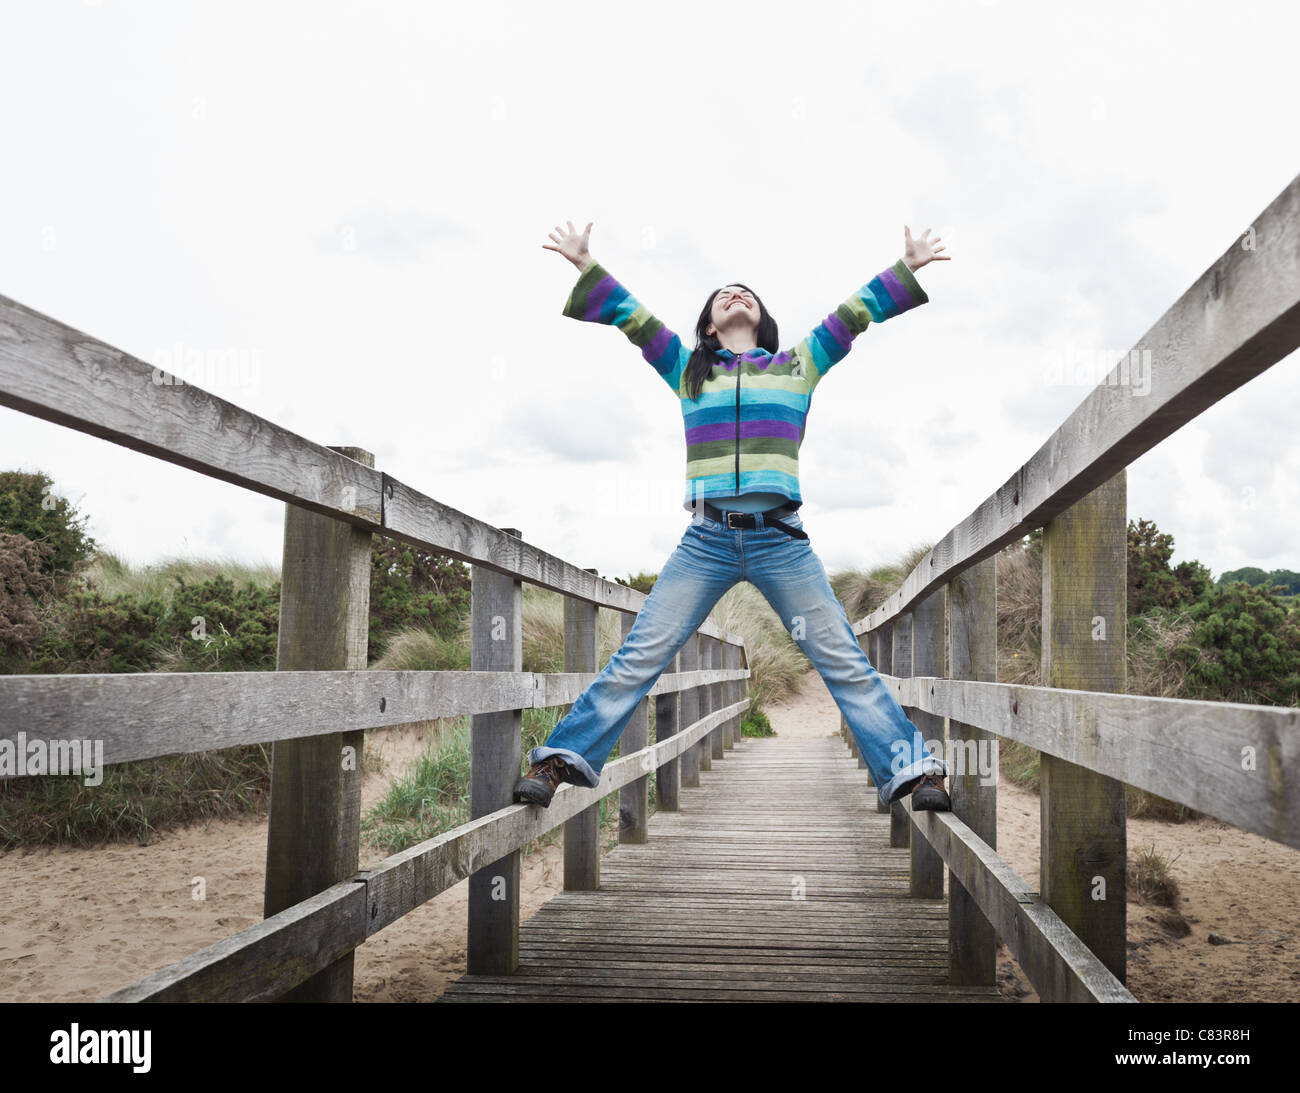 Girl playing on pier on beach Photo Stock